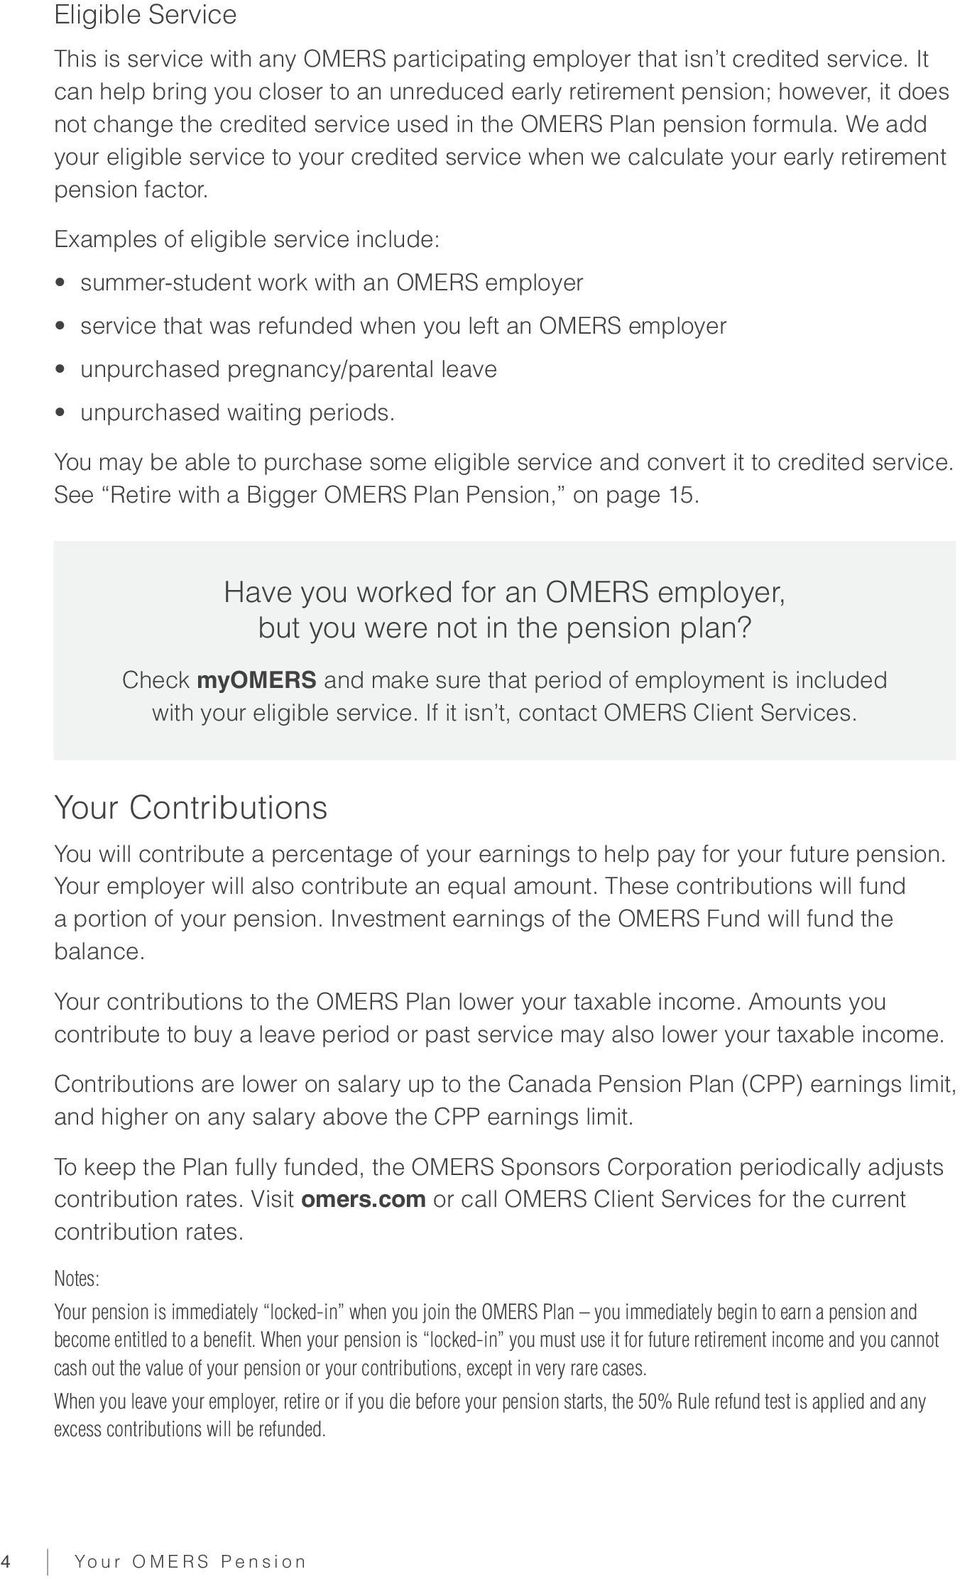 We add your eligible service to your credited service when we calculate your early retirement pension factor.